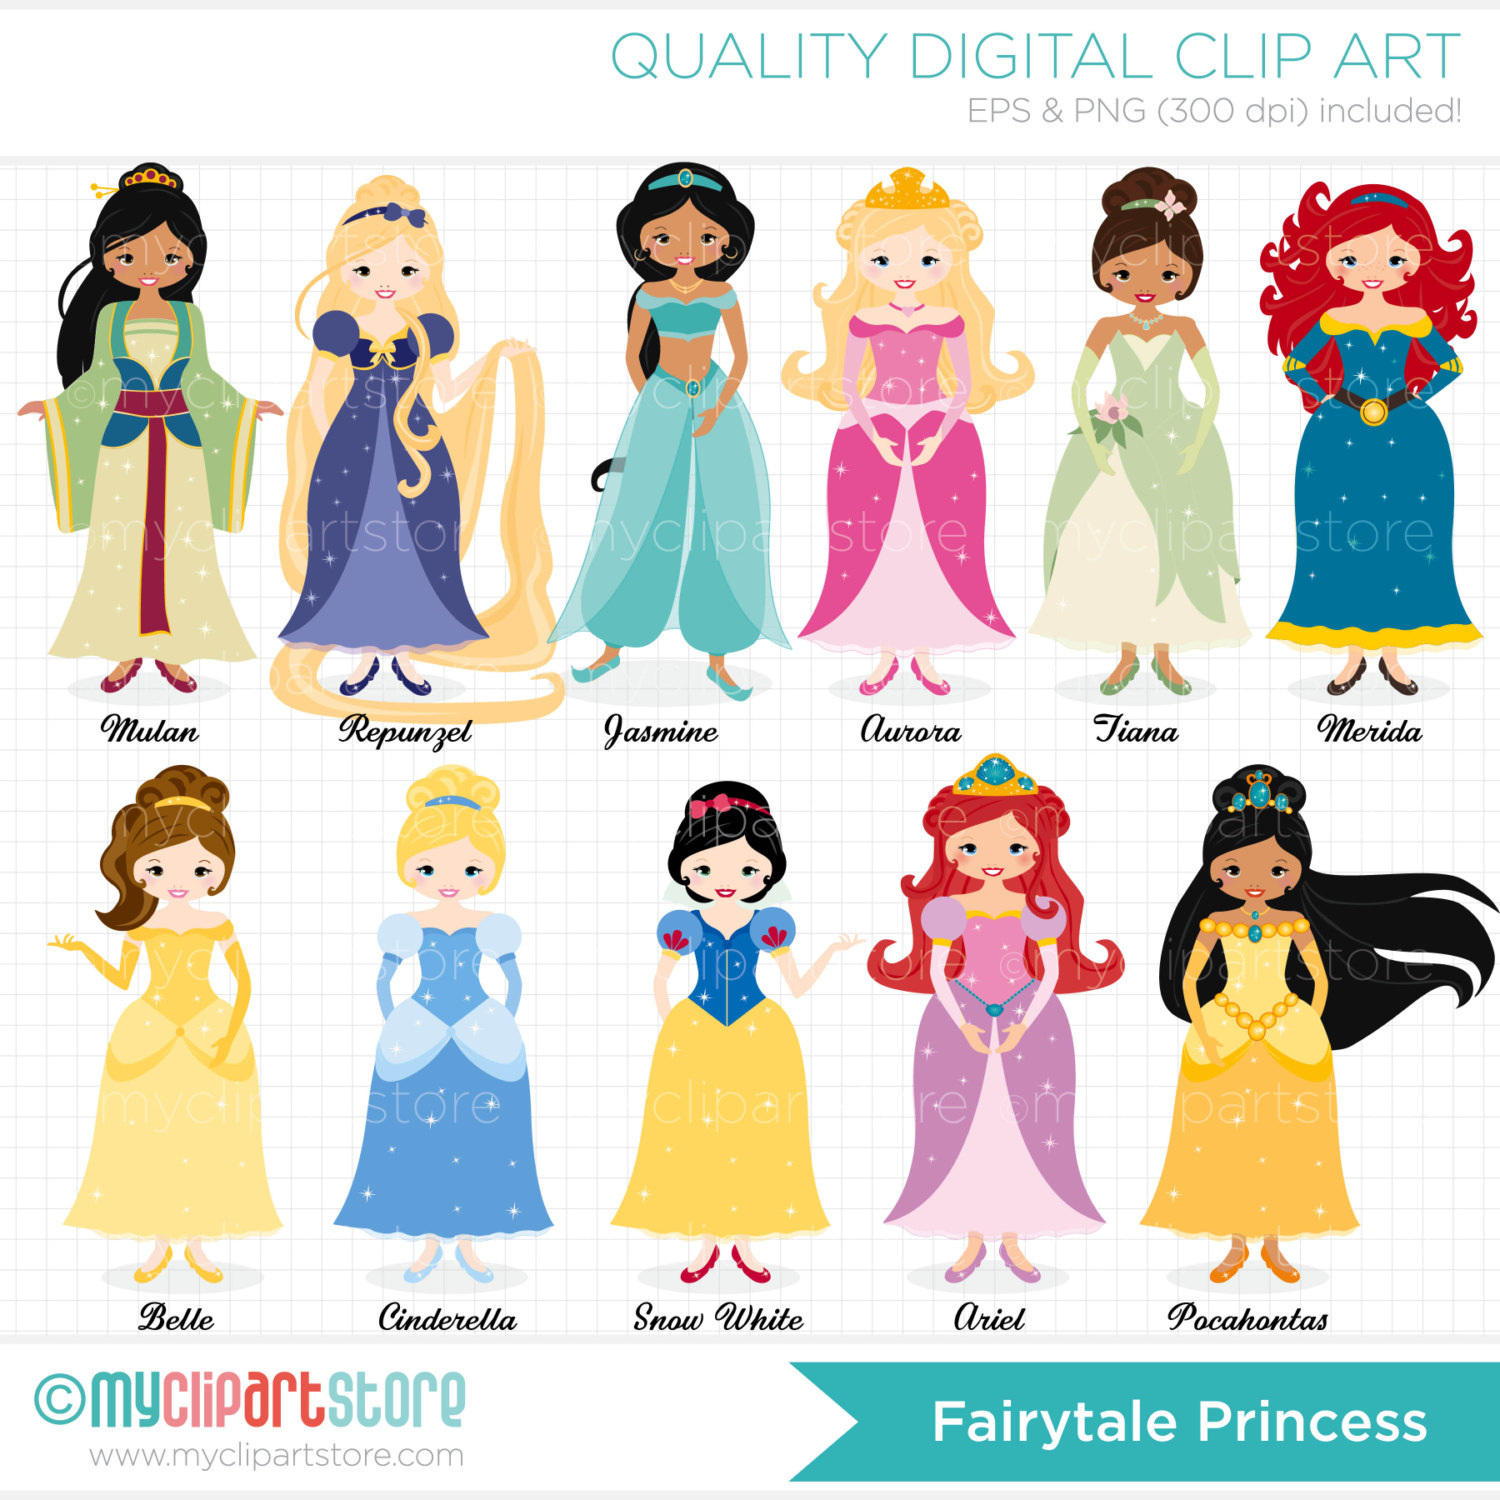 Disney princes clipart svg black and white Disney princess dresses clipart - ClipartFest svg black and white